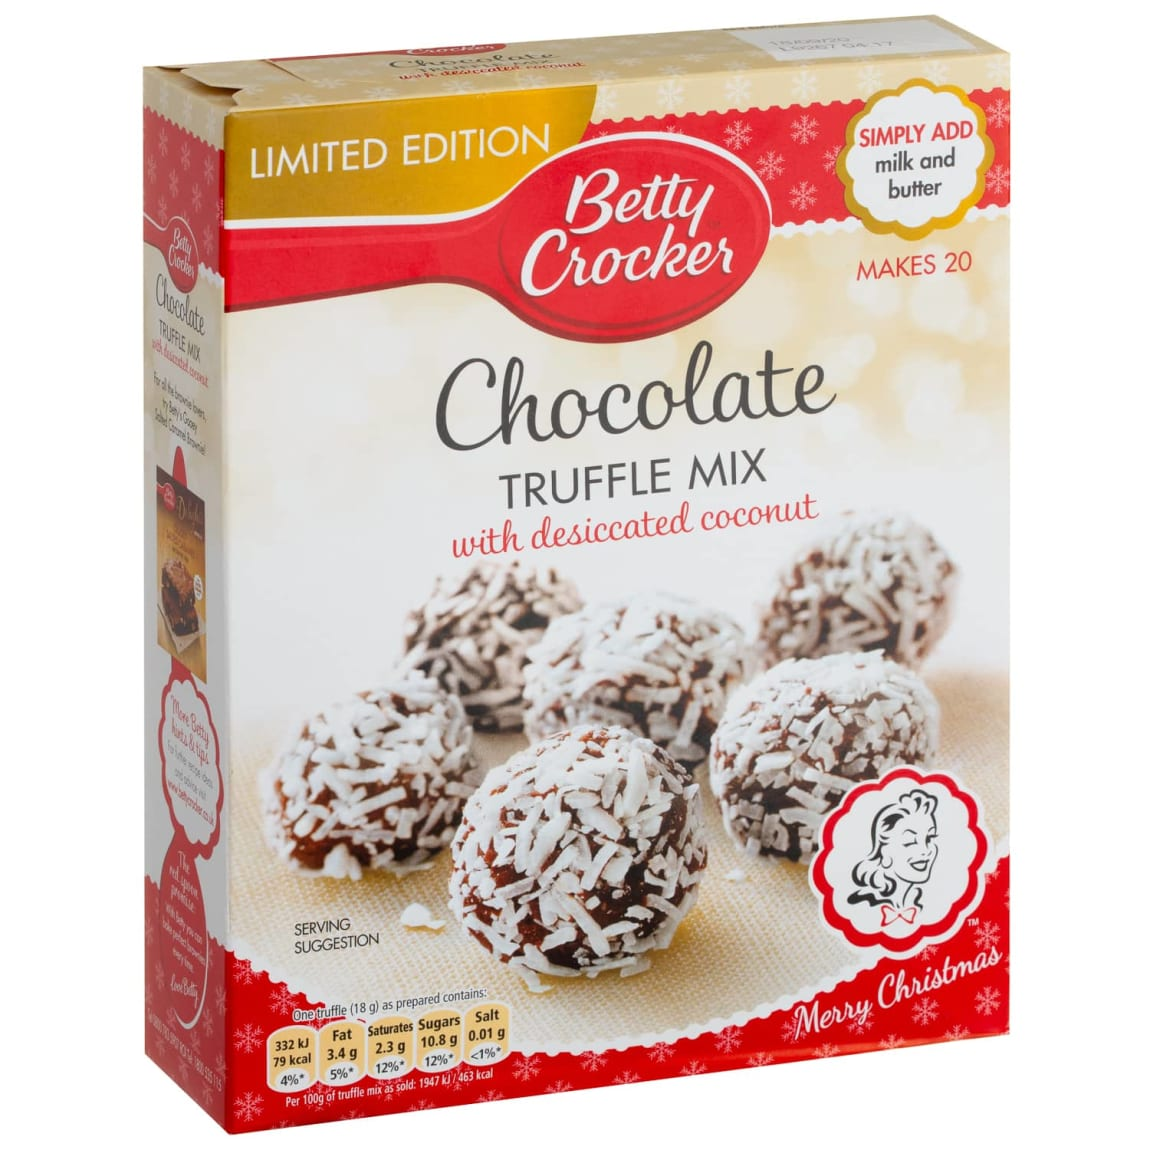 Betty Crocker Chocolate Truffle Mix 305g